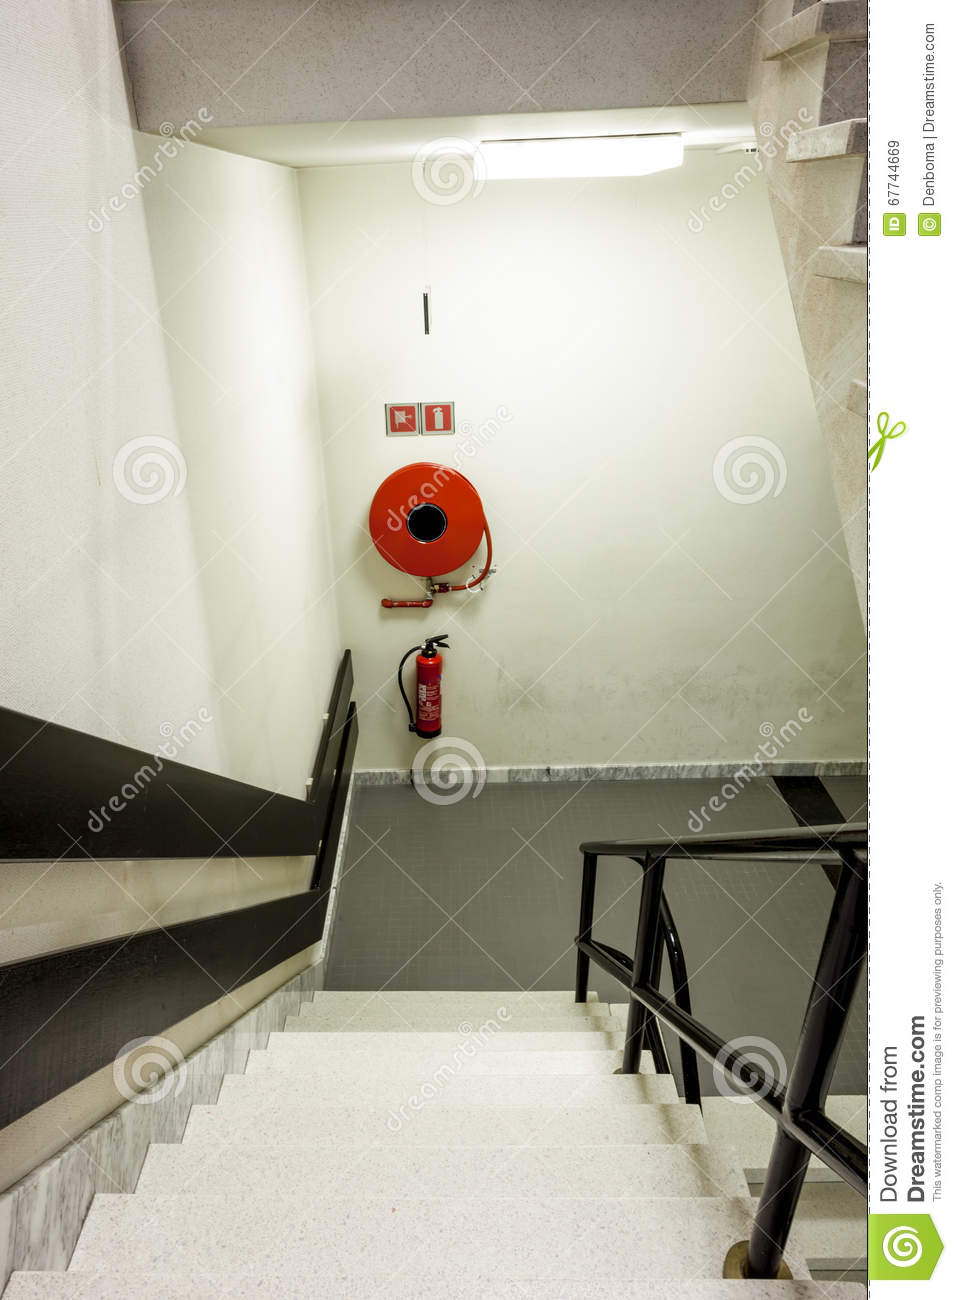 Fire Hose Reel Stock Image Image Of Security Nobody